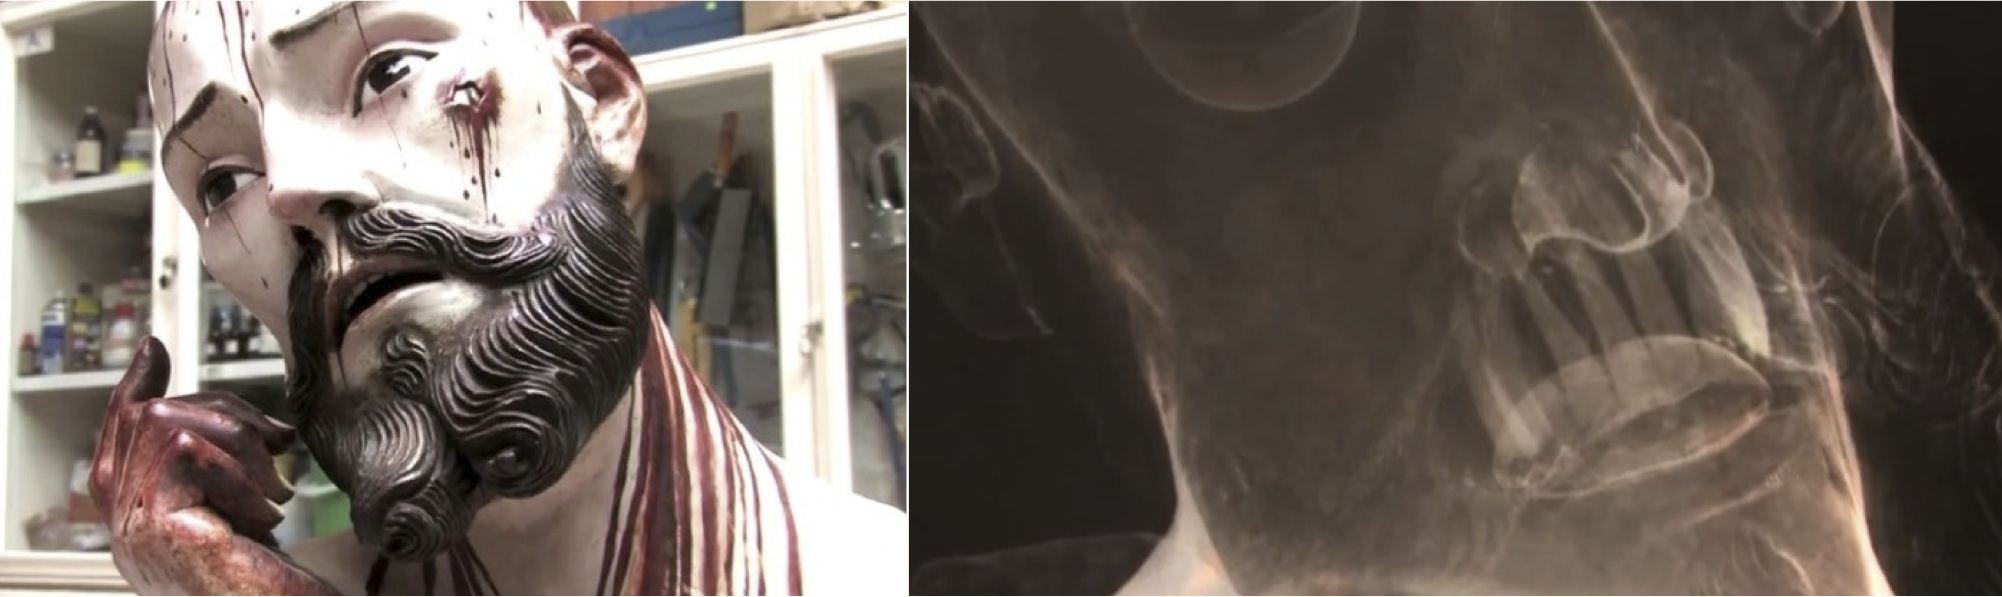 Left: 'Lord of Patience' statue displayed at a church in San Bartolo Cuautlalpan RIght: X-ray of Statue showing the 8 real human teeth. Images Credit: INAH TV on YouTube